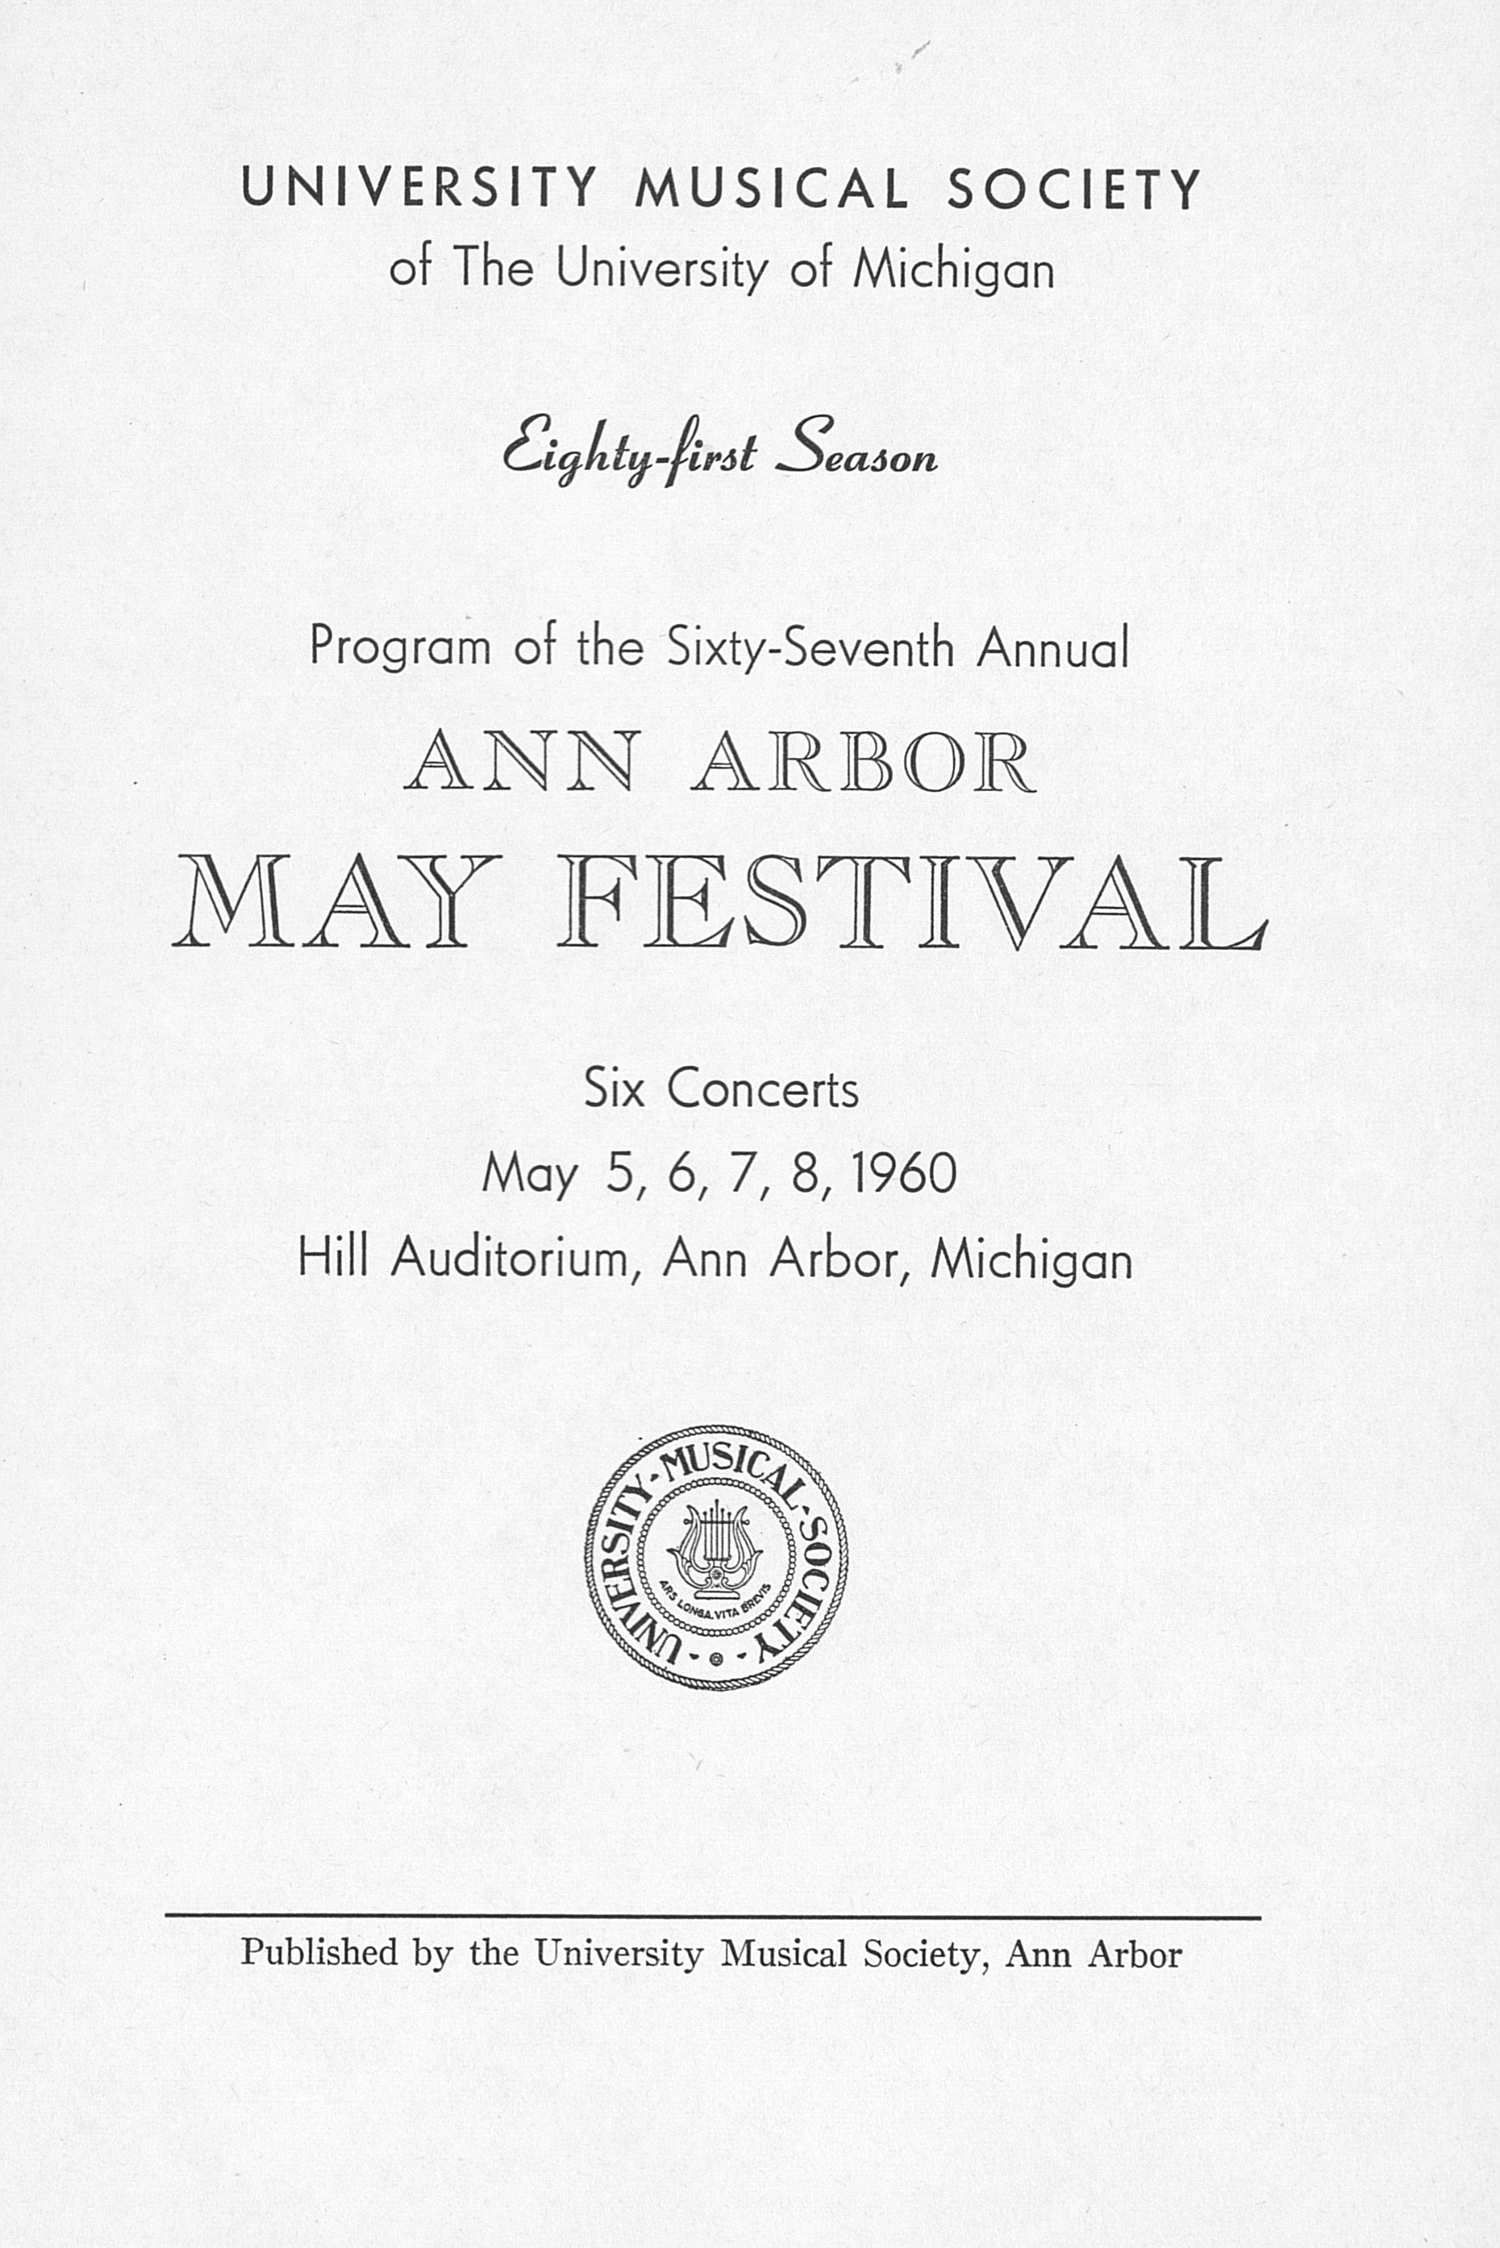 UMS Concert Program, May 5, 6, 7, 8, 1960: The Sixty-seventh Annual Ann Arbor May Festival -- The Philadelphia Orchestra image